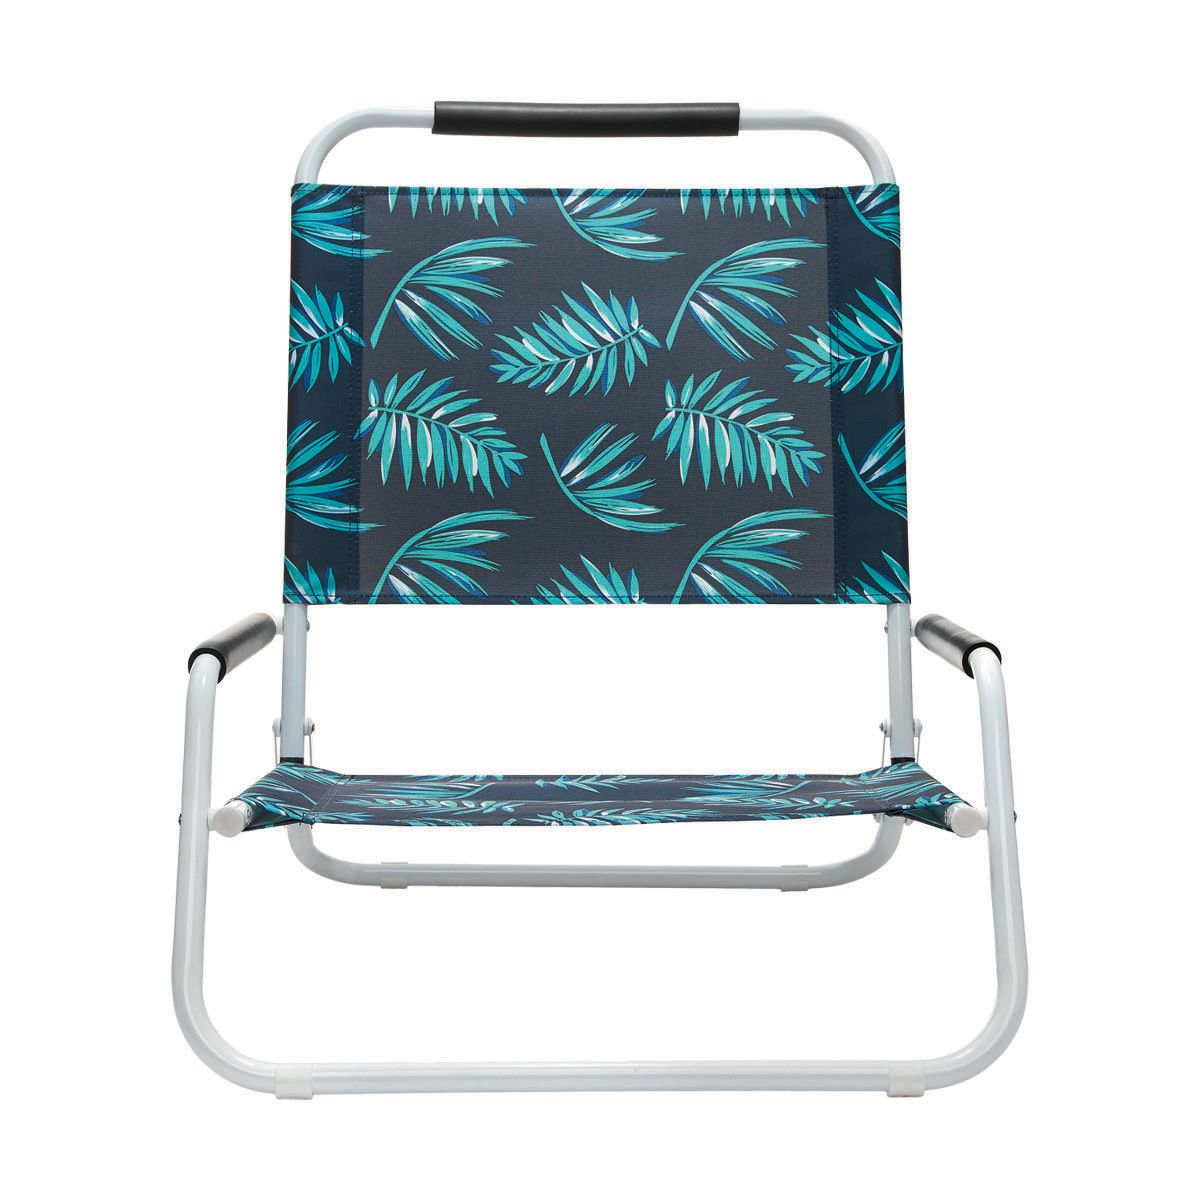 Beach Chair Kmart (With images) Beach chairs, Outdoor